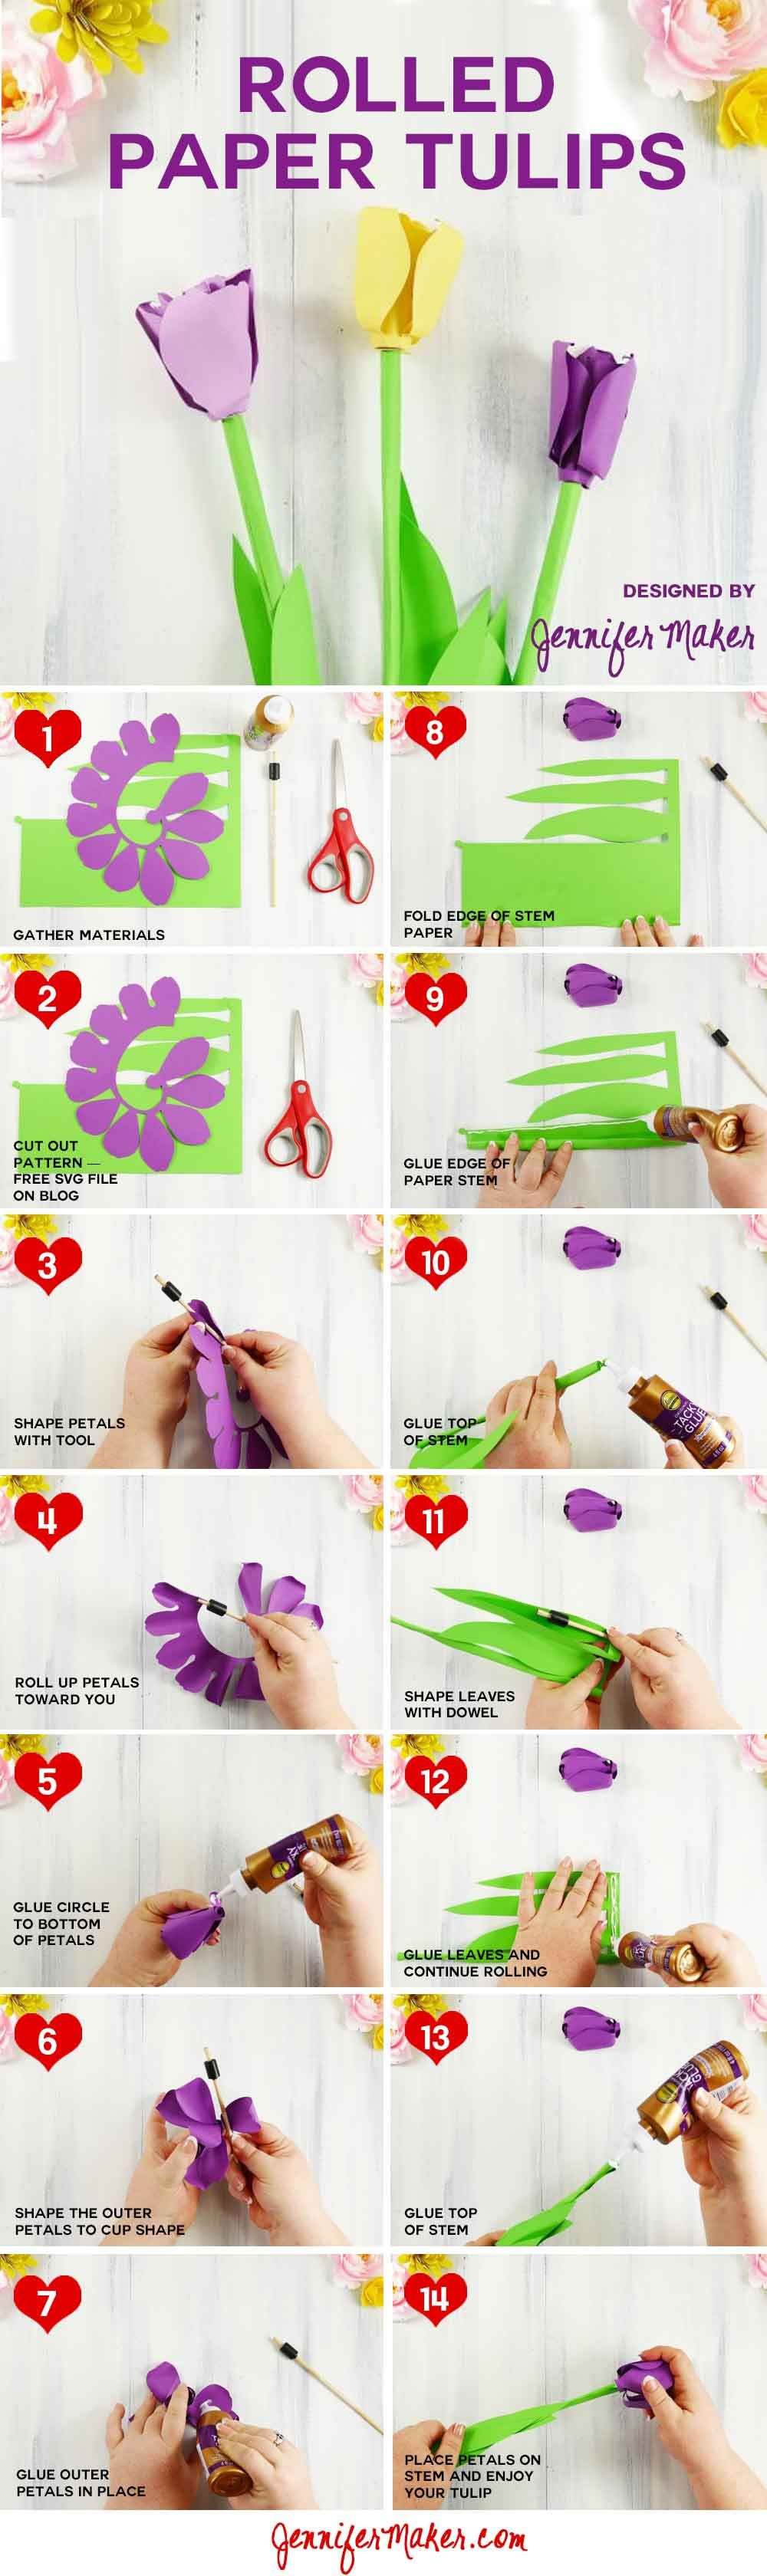 Make A Paper Tulip Bring Spring To Your Home Jennifer Maker Paper Flowers Diy Craft Projects Crafts